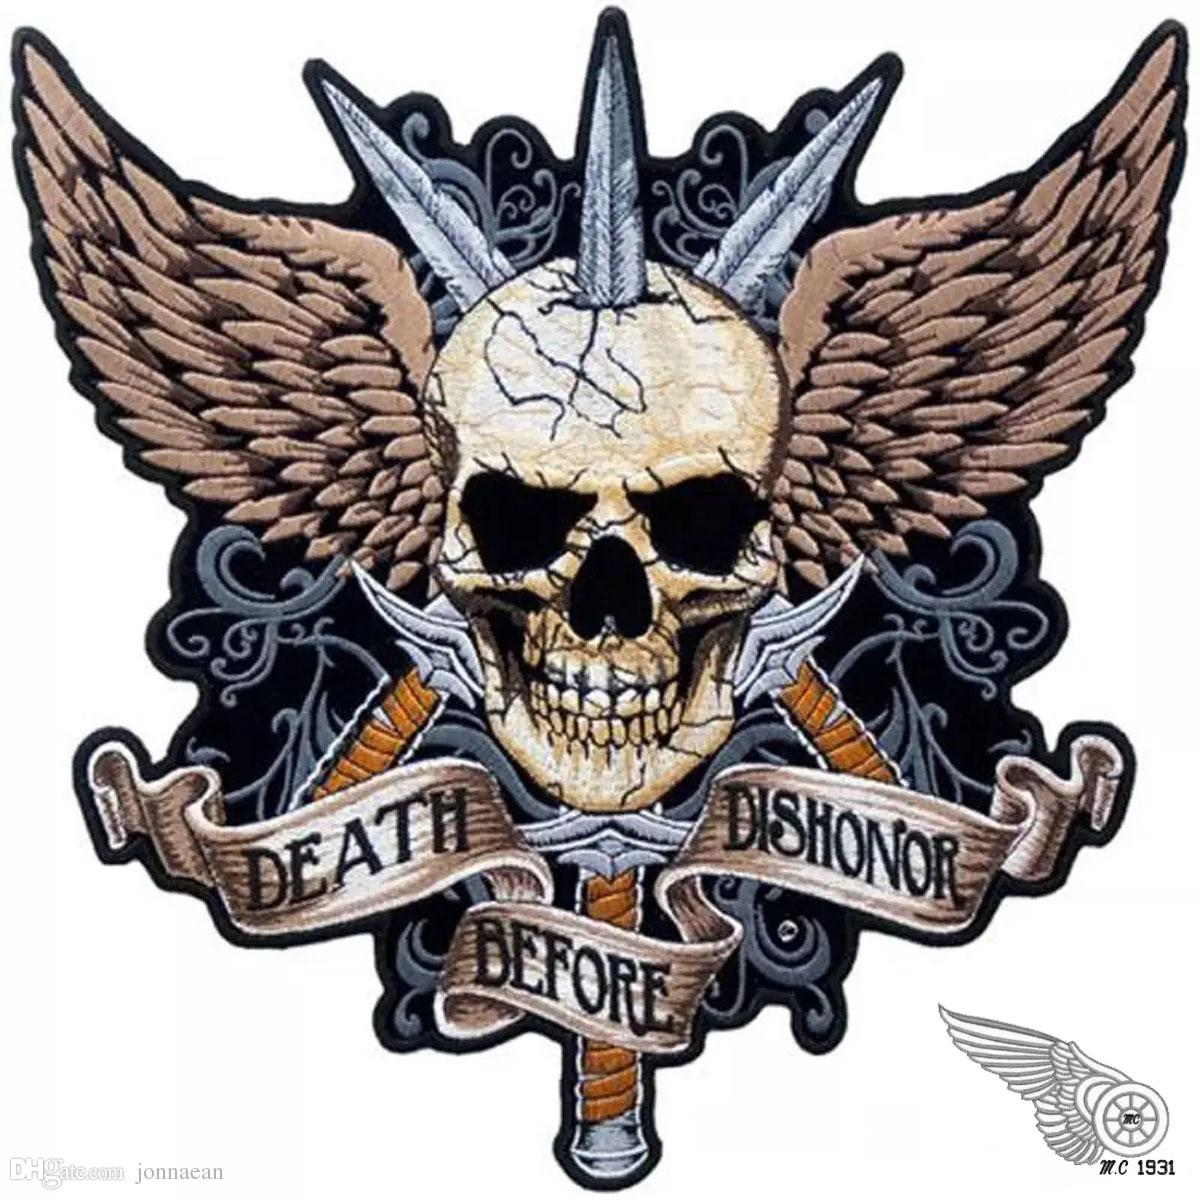 Sword Skull DEATH BEFORE DISHONOR Punk Motorcycle Biker Club MC Back Jacket Motorcycle Racing Embroidered Patches Free Shipping